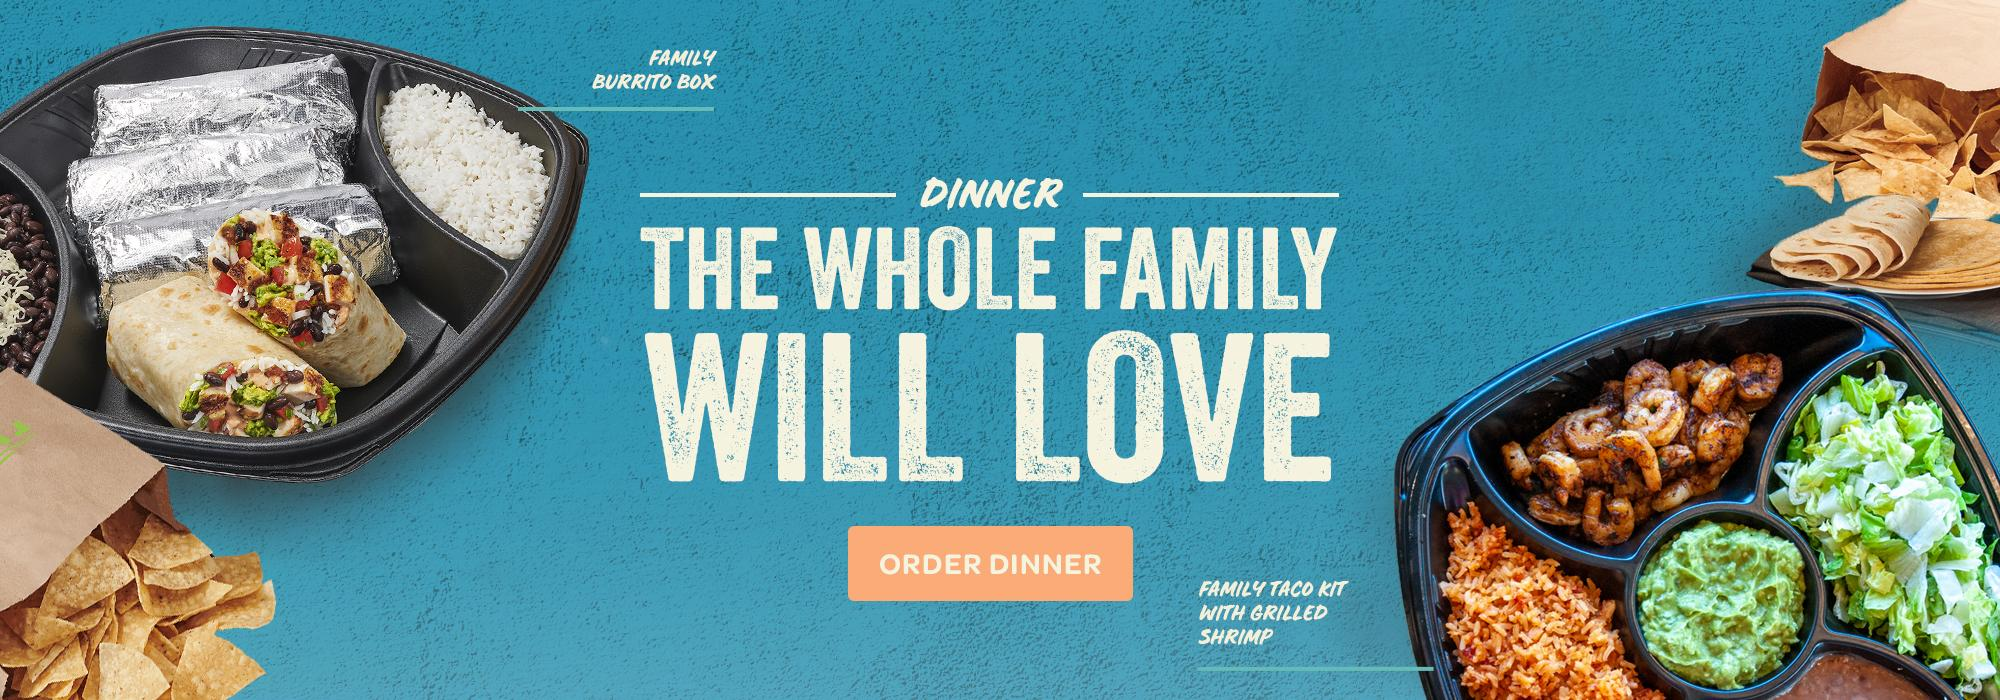 Dinner The Whole Family Will Love